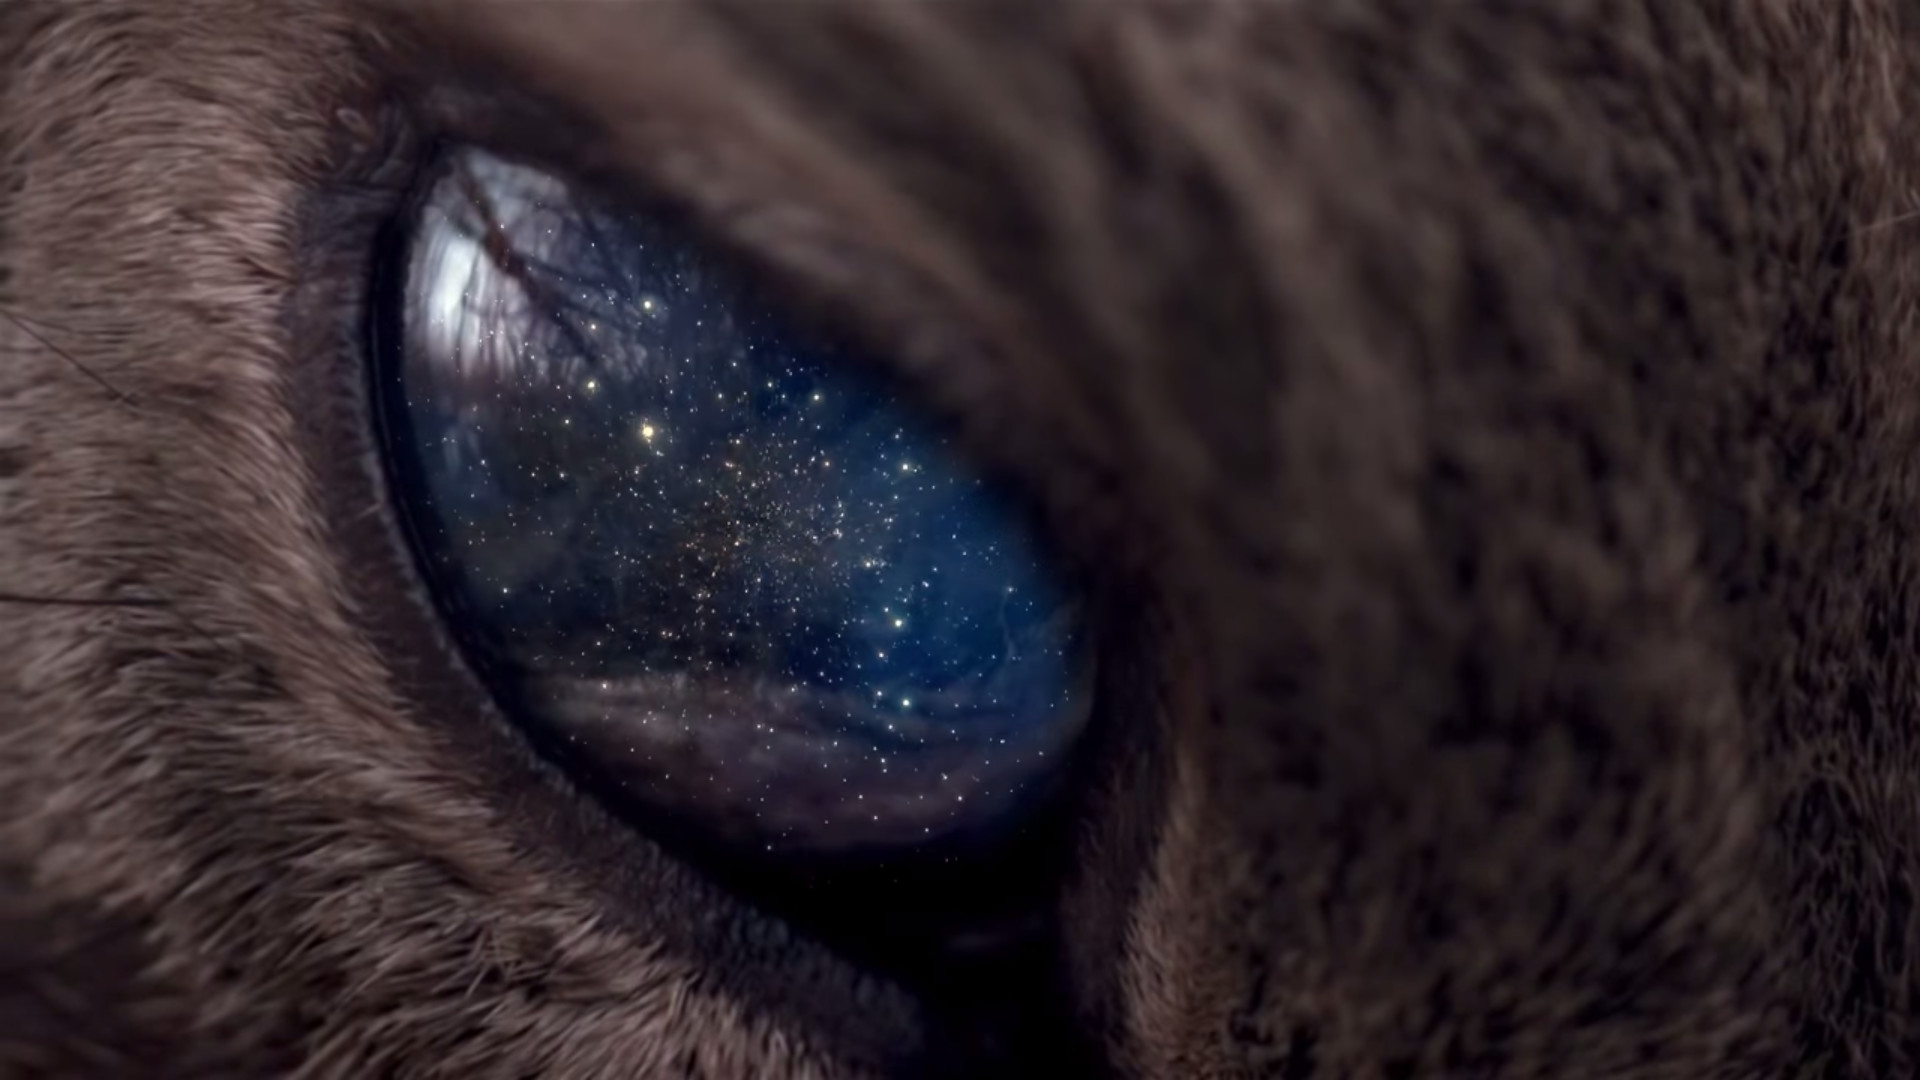 Res: 1920x1080, universe, Space, Stars, Animals, Eyes, Galaxy, Cat Wallpapers HD